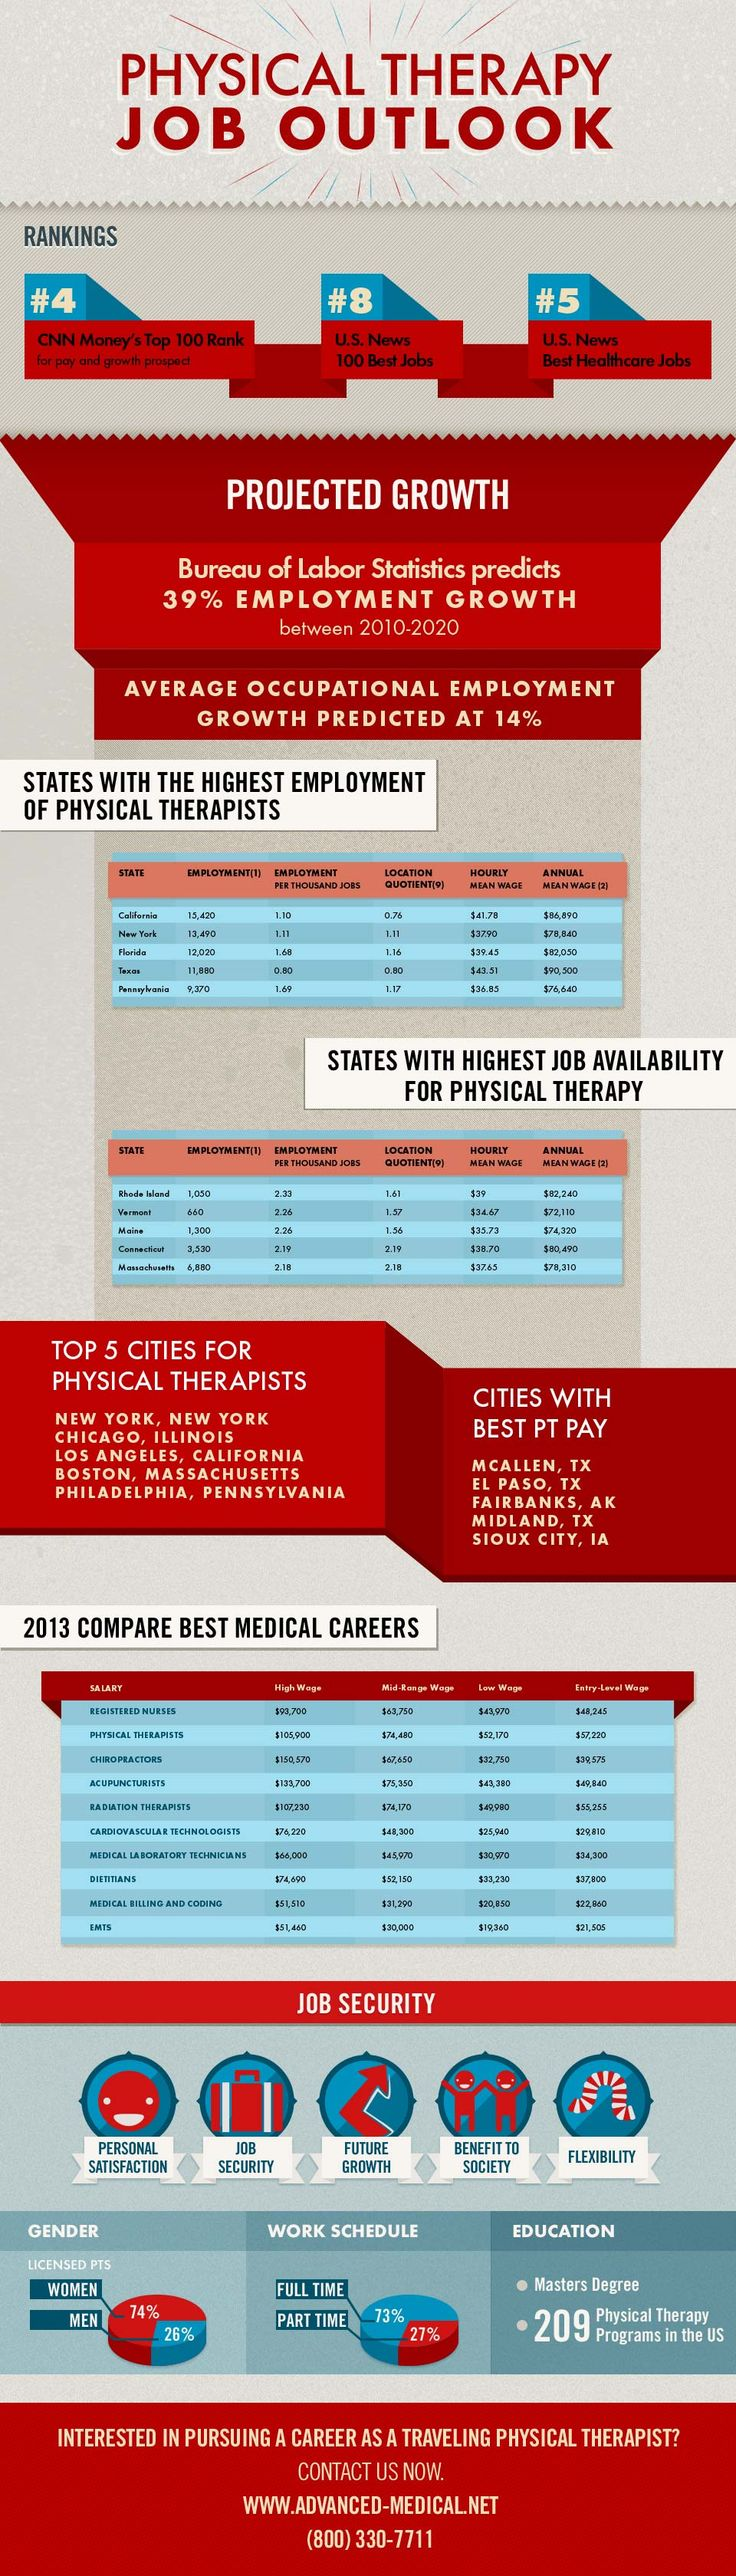 Advance physical therapy magazine - View Cities With Highest Job Demands Learn Job Satisfaction Wages And More Travel Physical Therapy Jobs At Advanced Medical